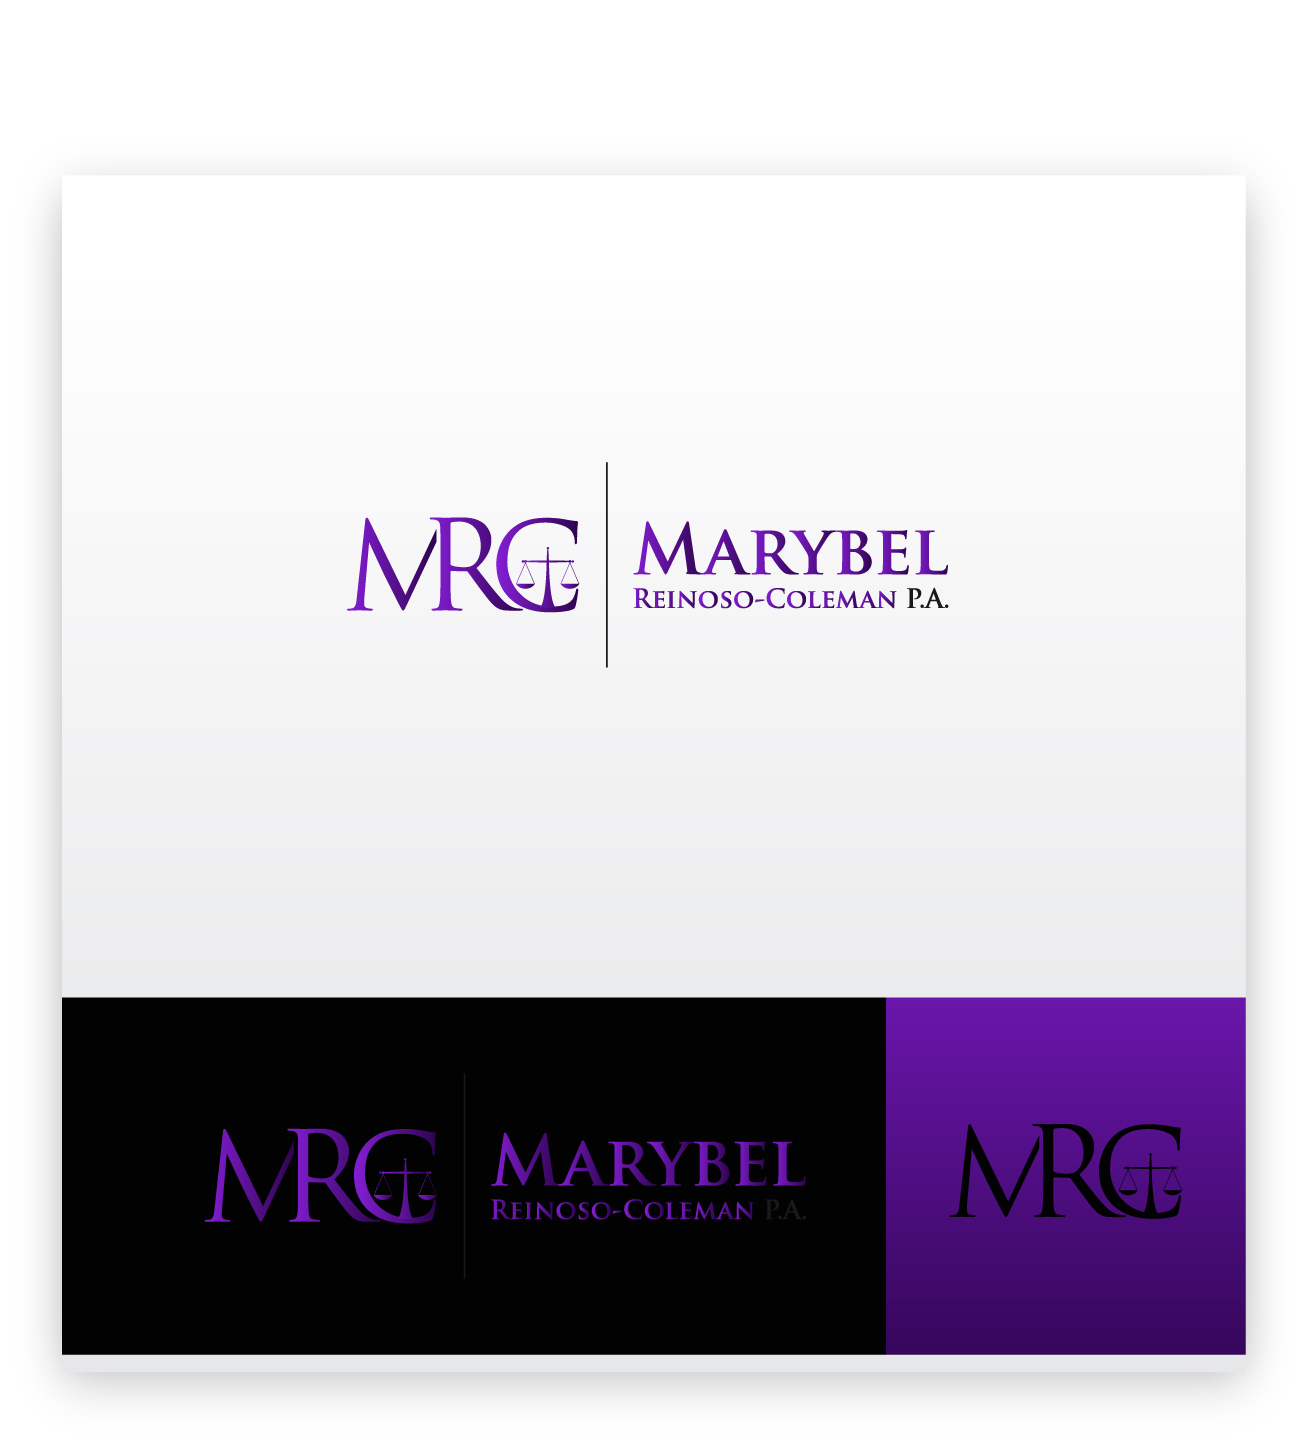 Logo Design by zoiDesign - Entry No. 34 in the Logo Design Contest Creative Logo Design for Marybel Reinoso Coleman P.A..